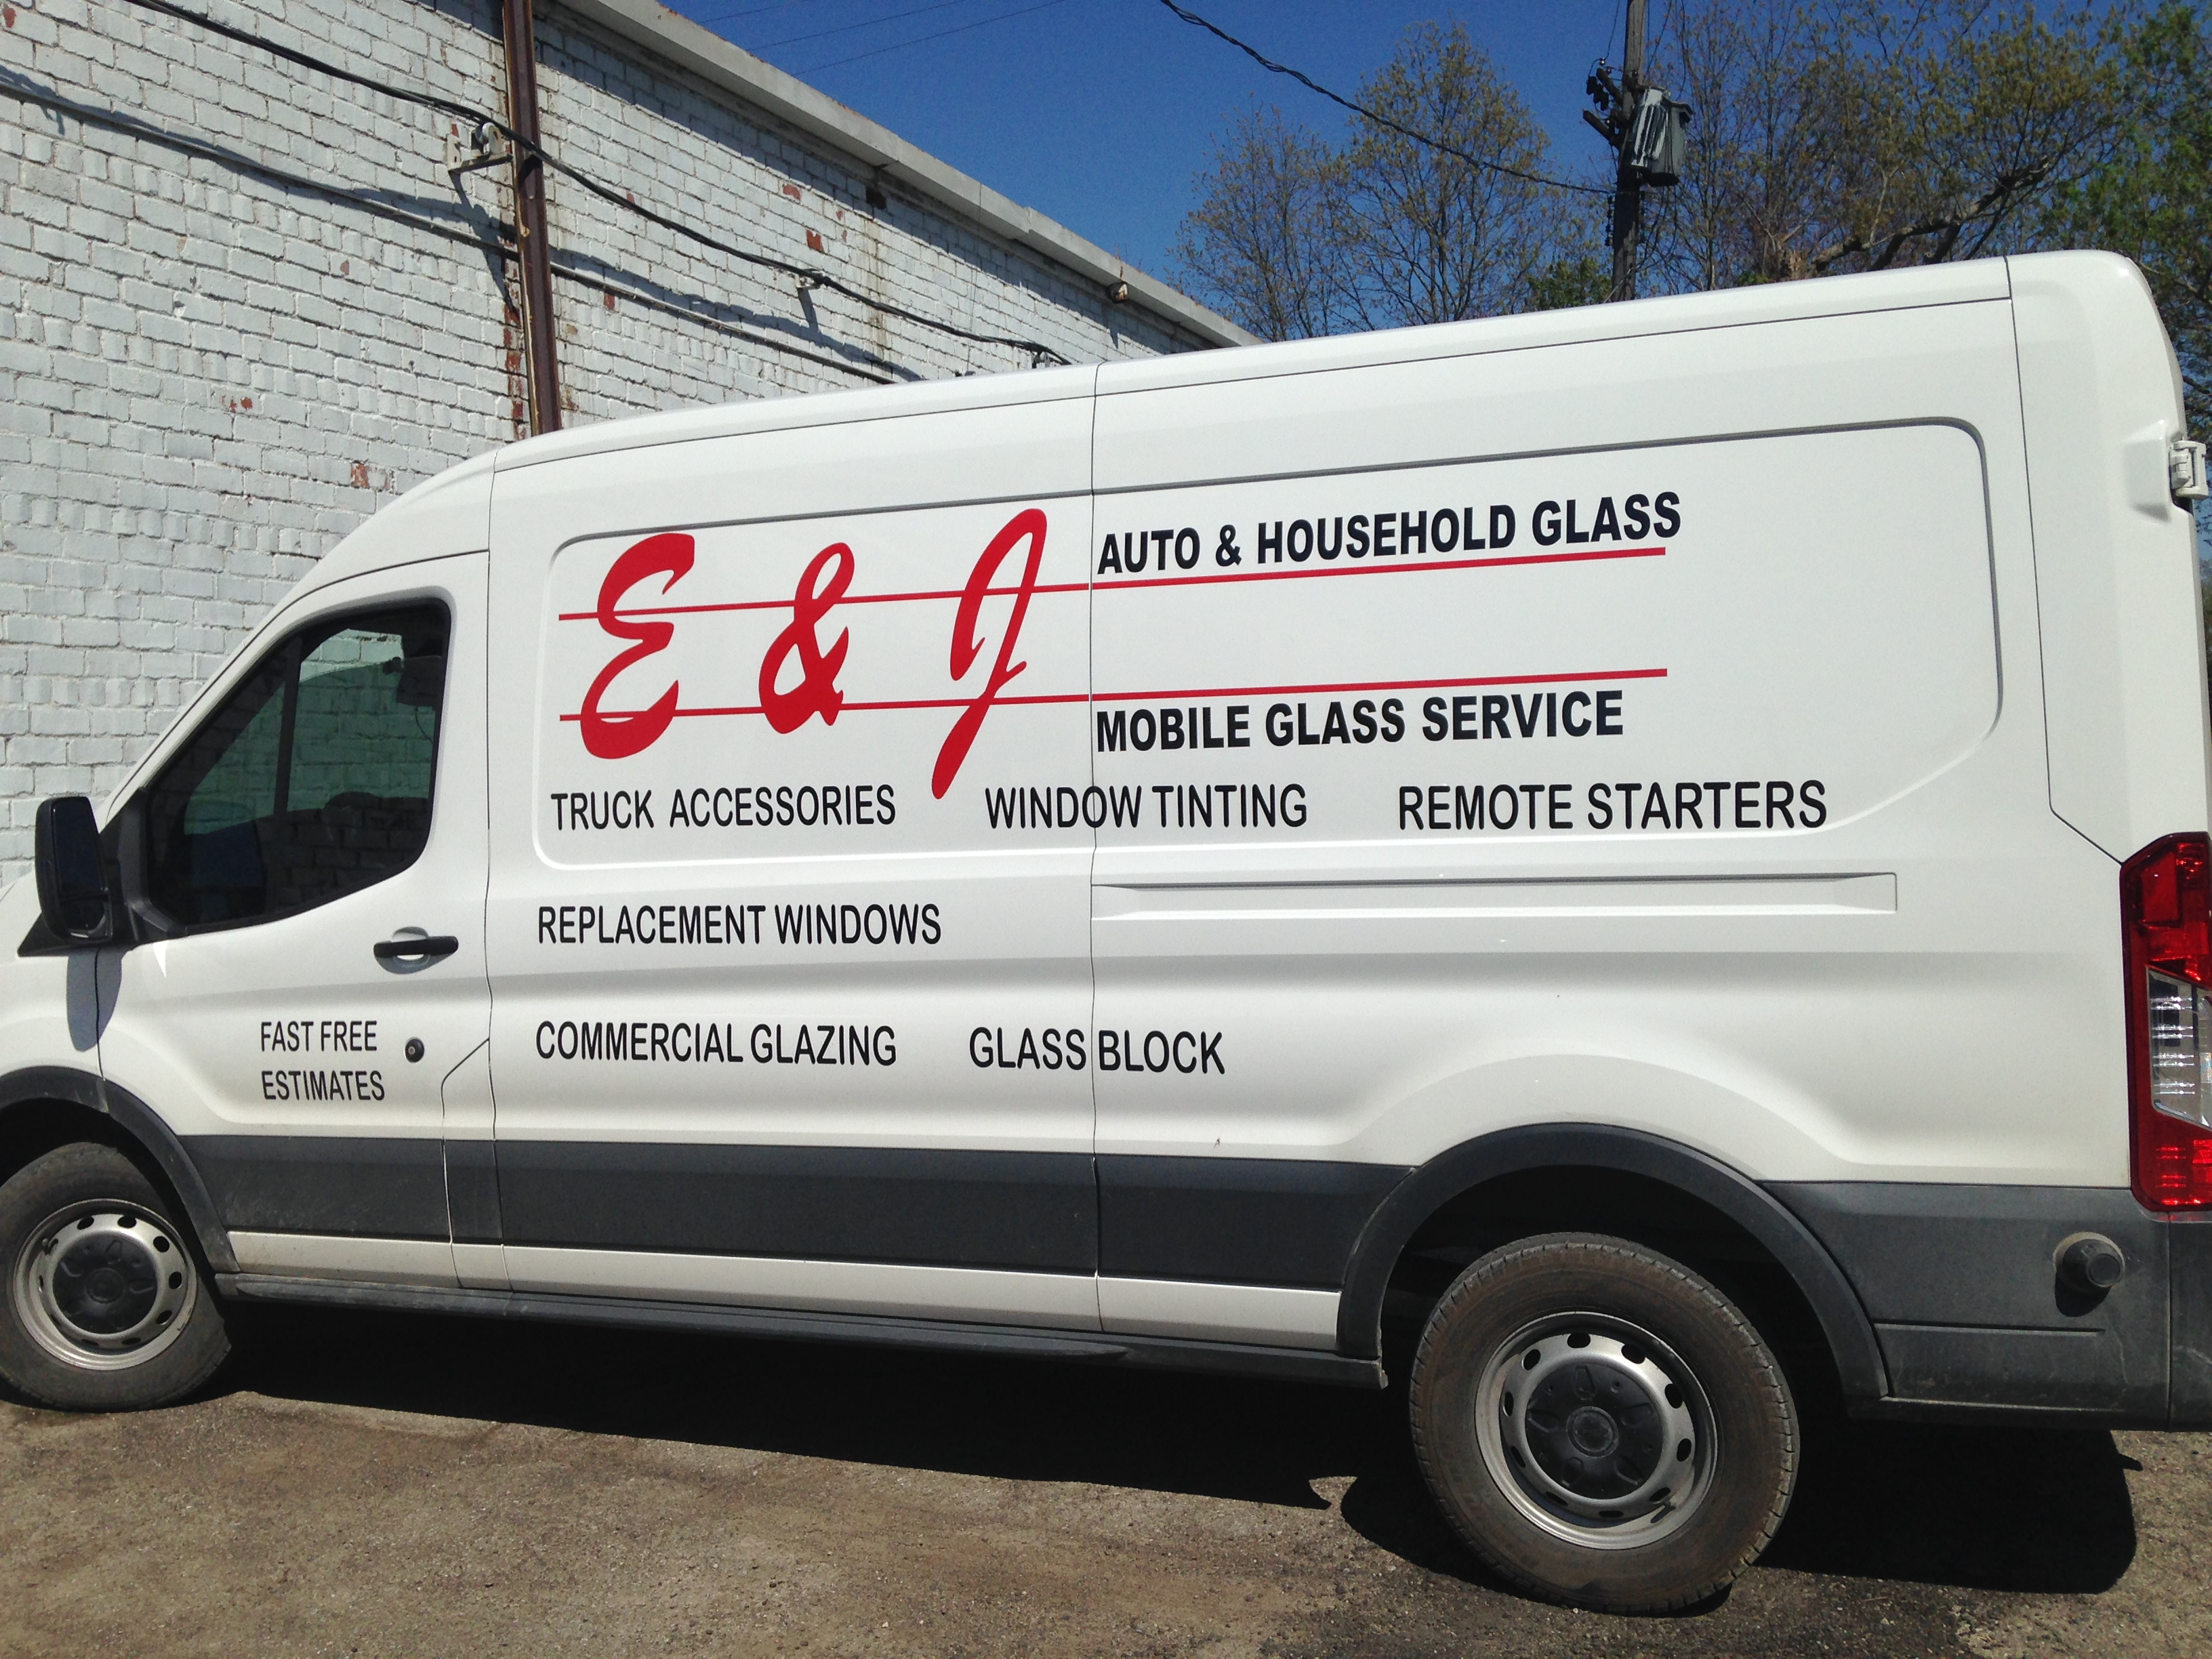 Our car ready to serve you in Ashtabula, OH